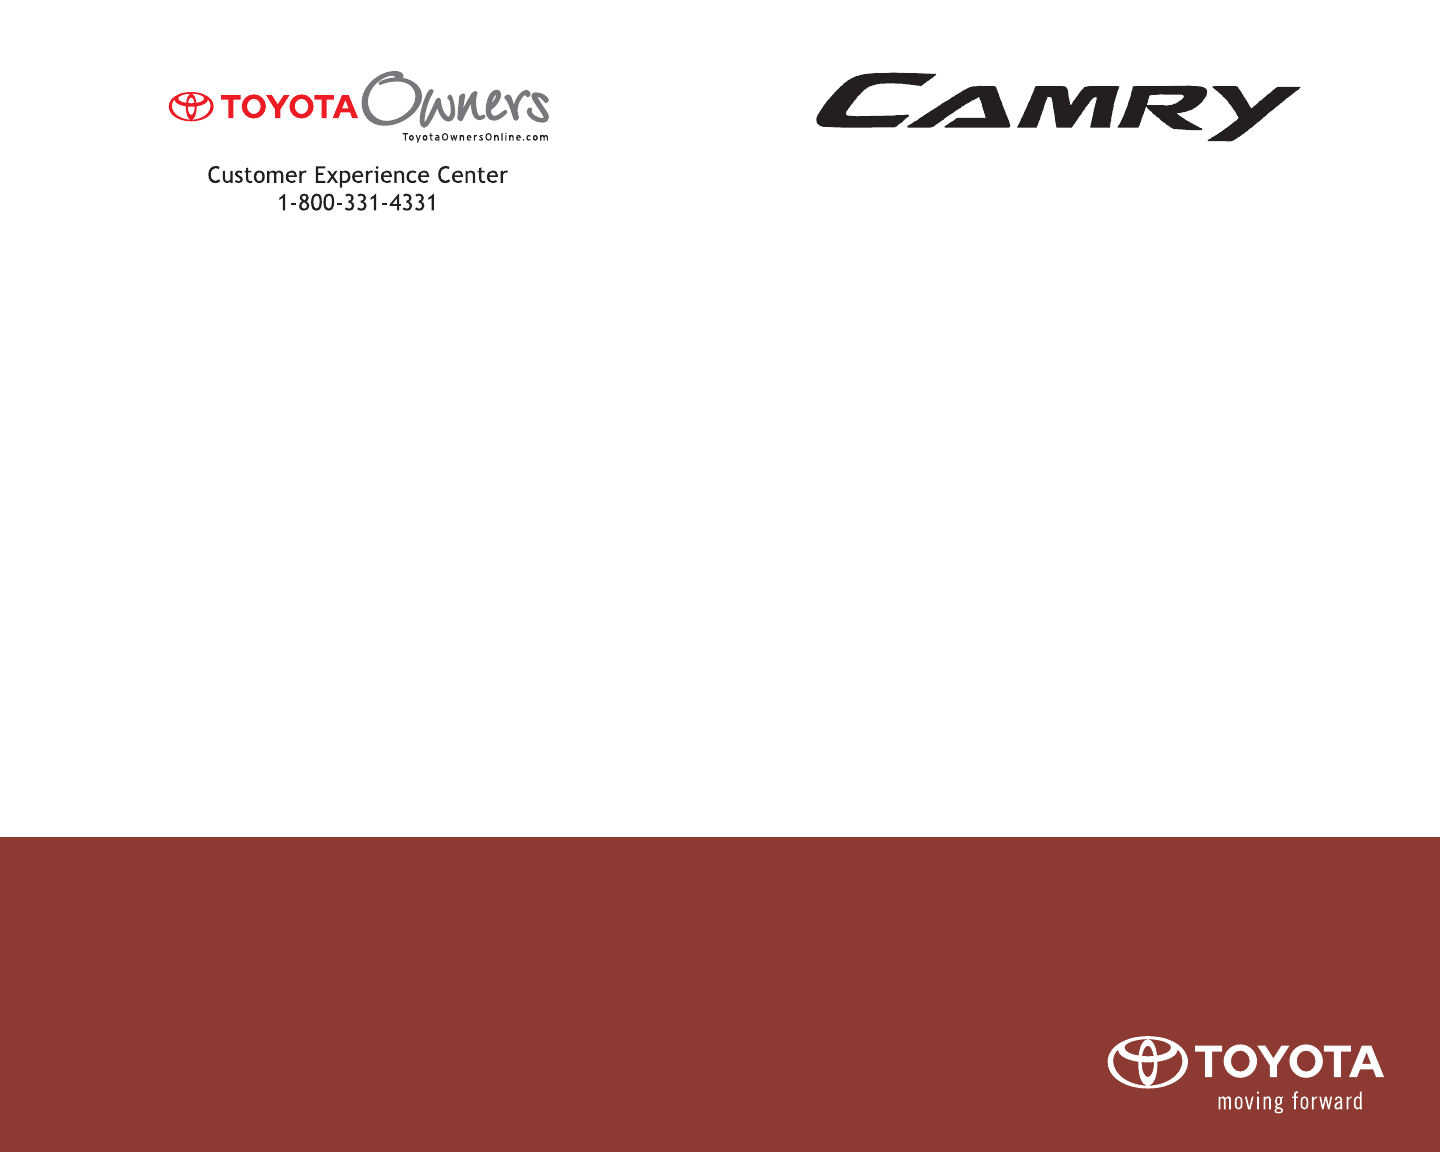 2009 Toyota Camry Owners Manual Pdf